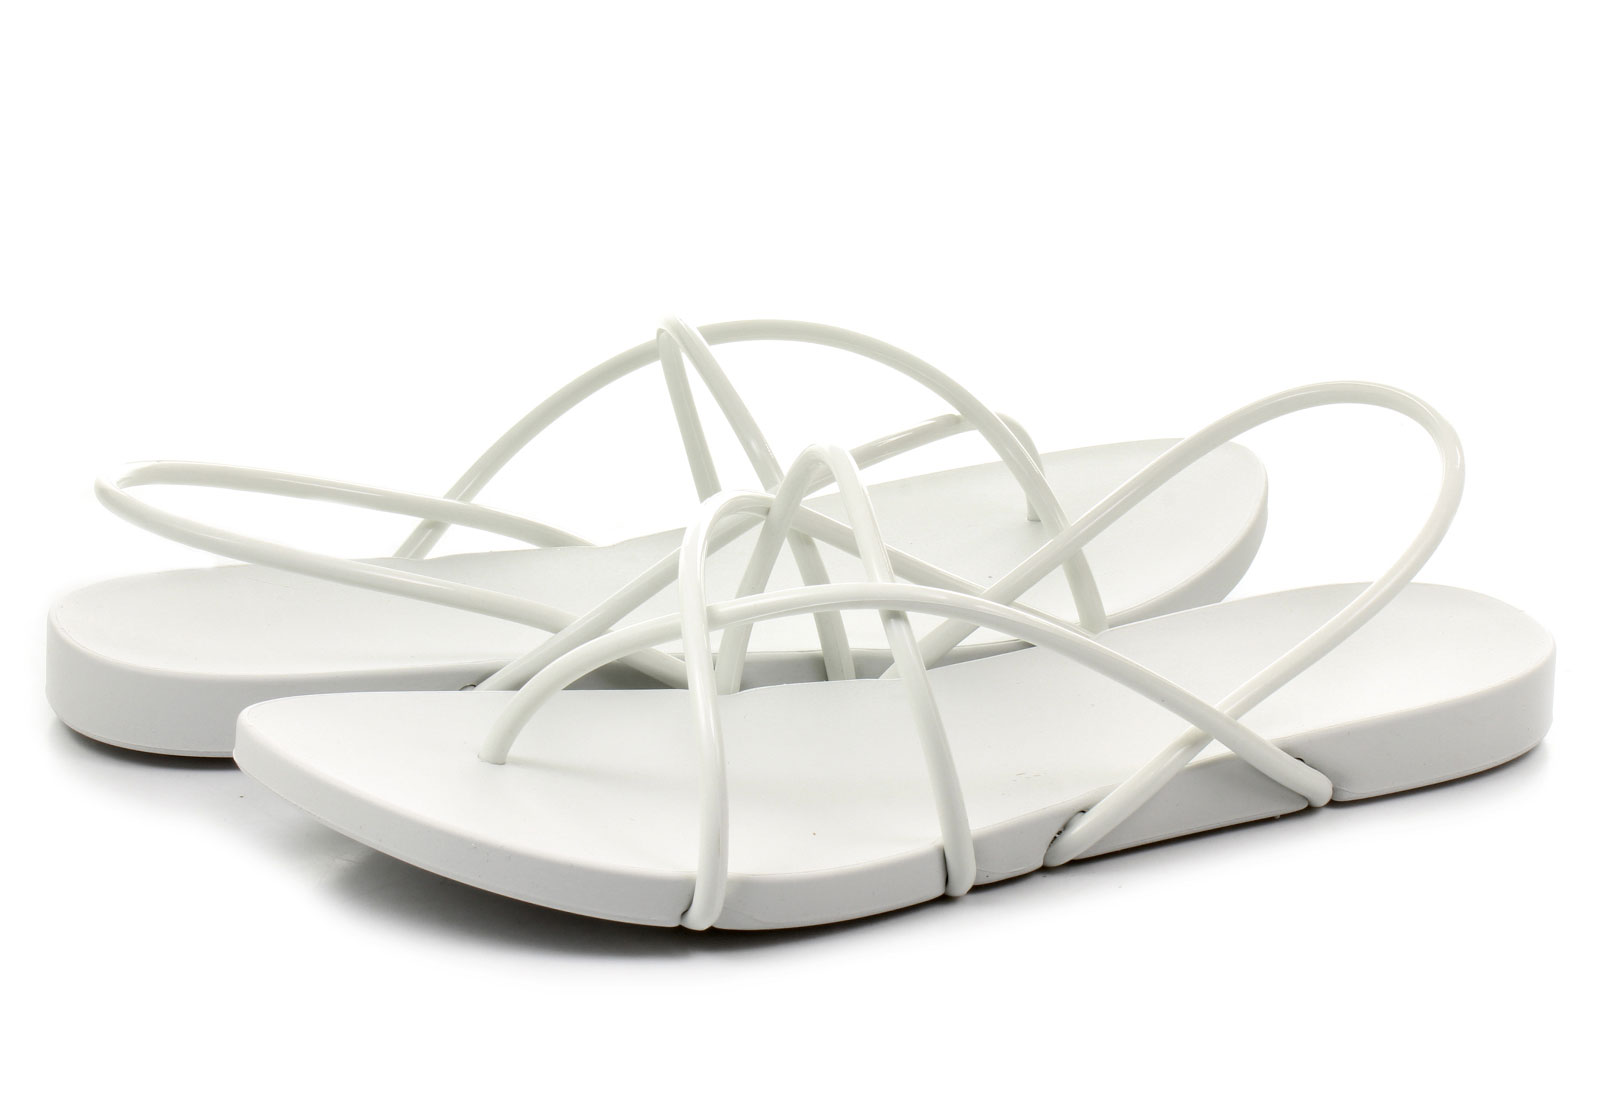 Philippe More Online 81600 Starck 20790 Ipanema Shop Sandals kOZuPXi